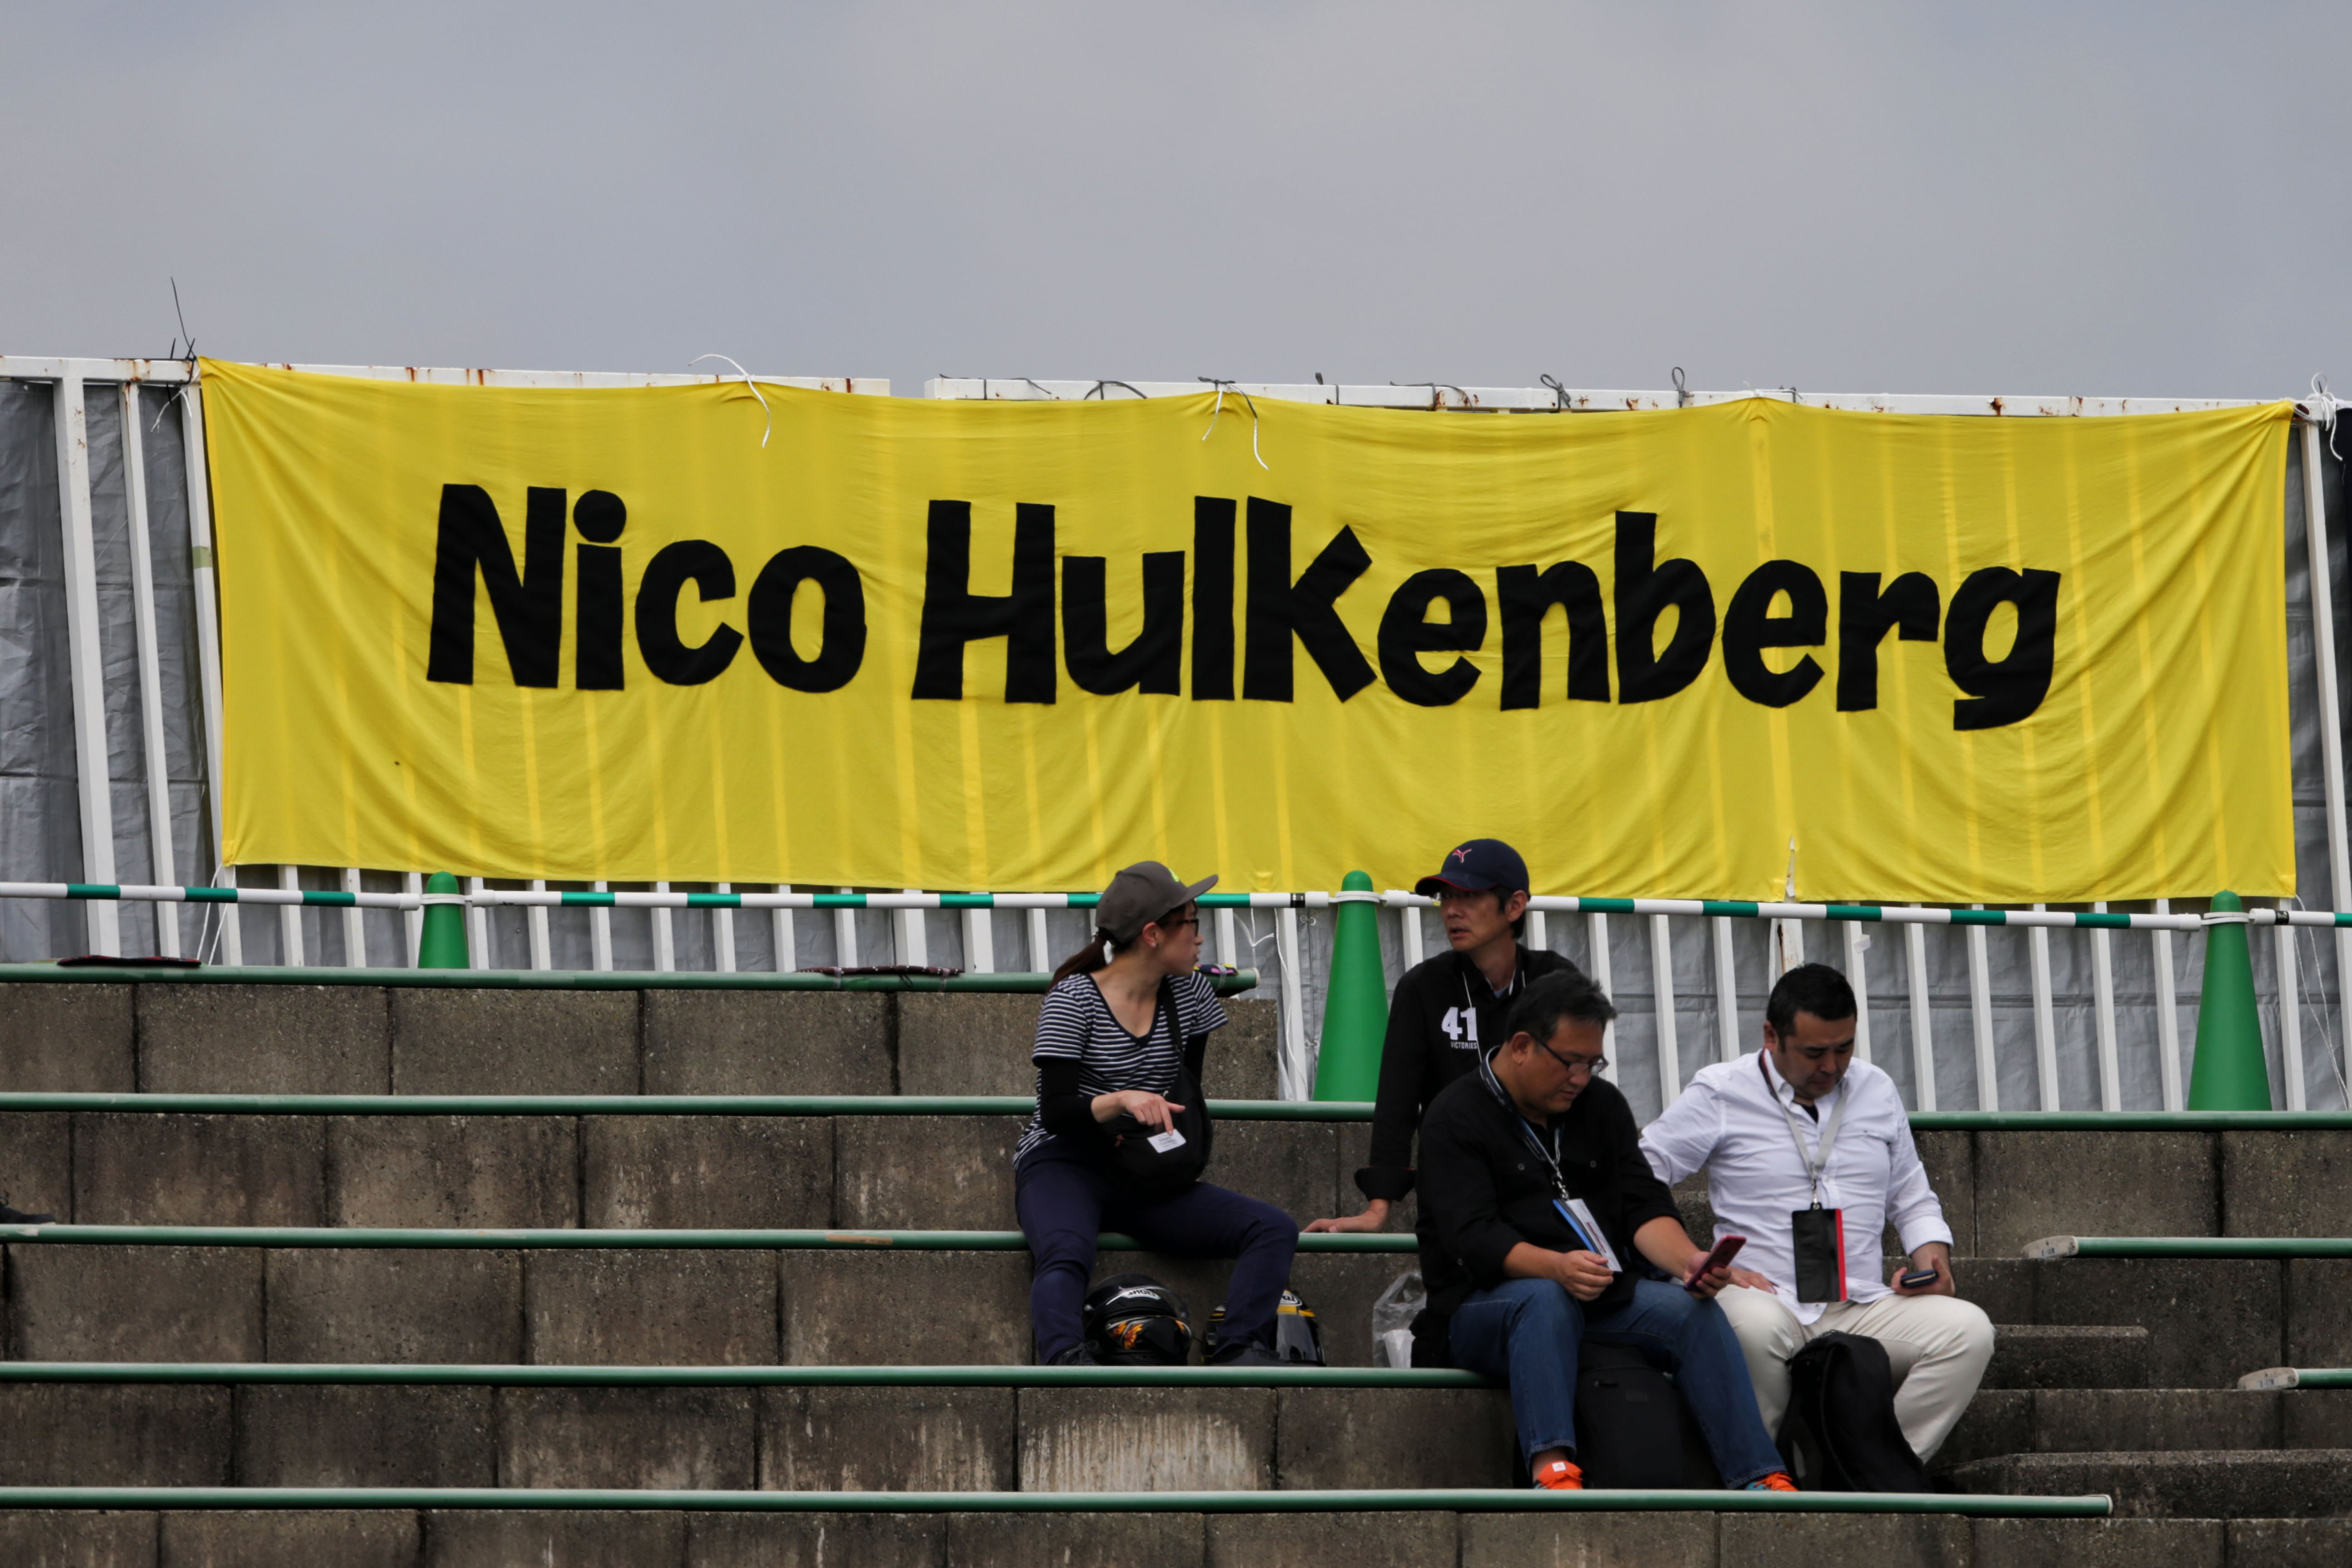 Formula One World Championship 2017, Round 16, Japanese Grand Prix, Suzuka, Japan, Saturday 7 October 2017 – fans in the grandstand and a banner for Nico Hulkenberg (GER) Renault Sport F1 Team.